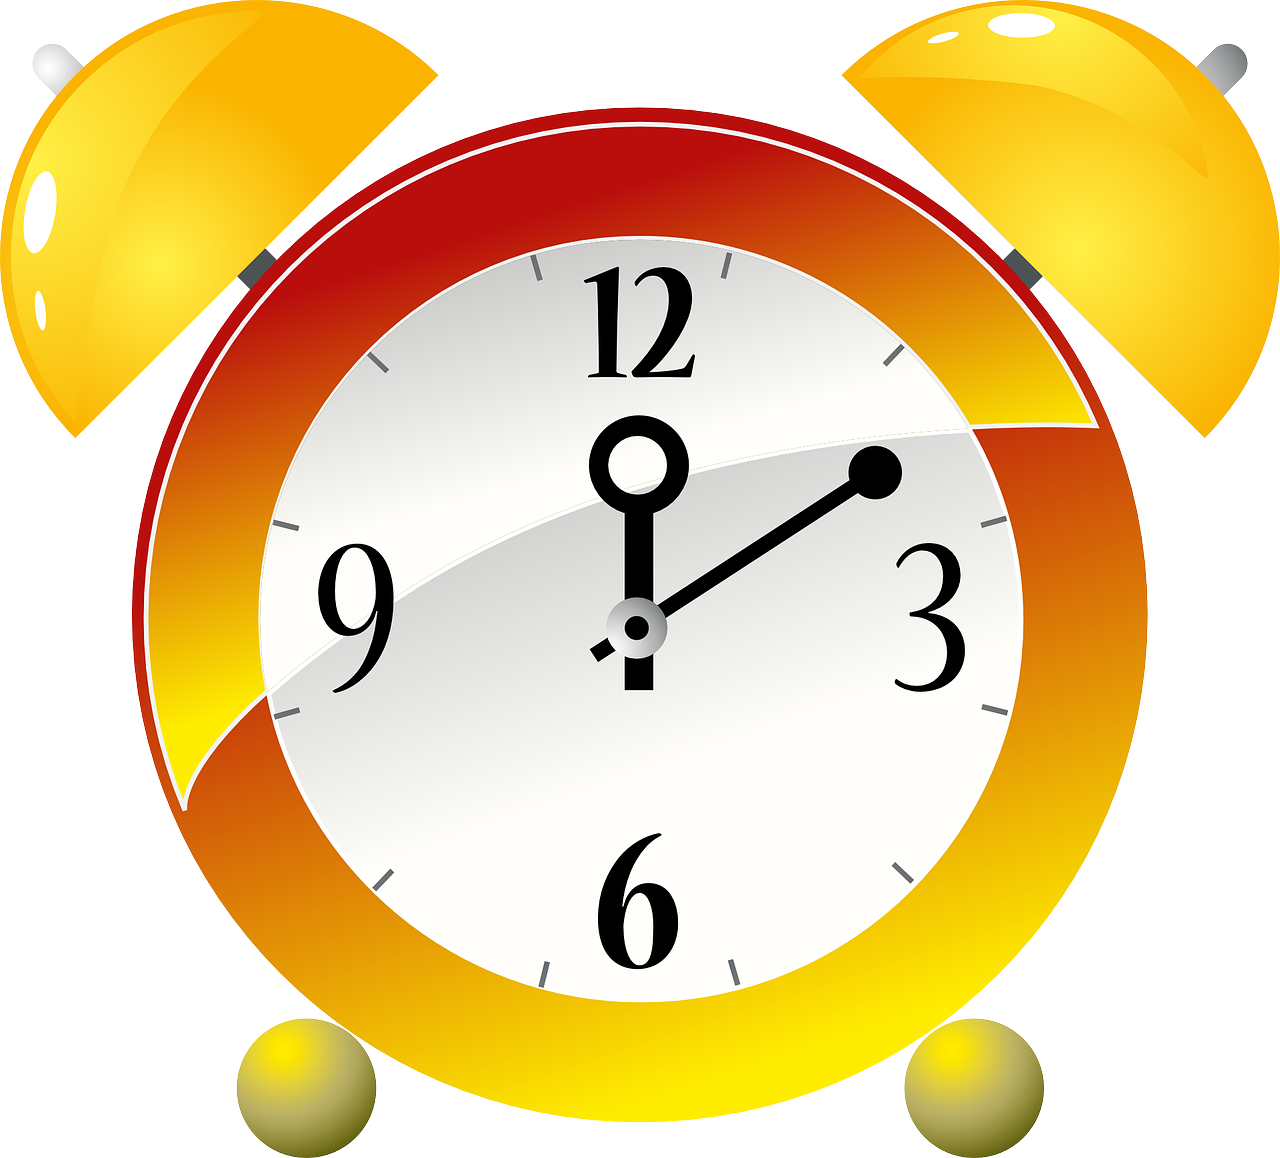 alarm clock,clock,time,wake up,awaken,analog clock,ticking,watch,hour,alarm,mechanical,ringing,analog,free vector graphics,free pictures, free photos, free images, royalty free, free illustrations, public domain